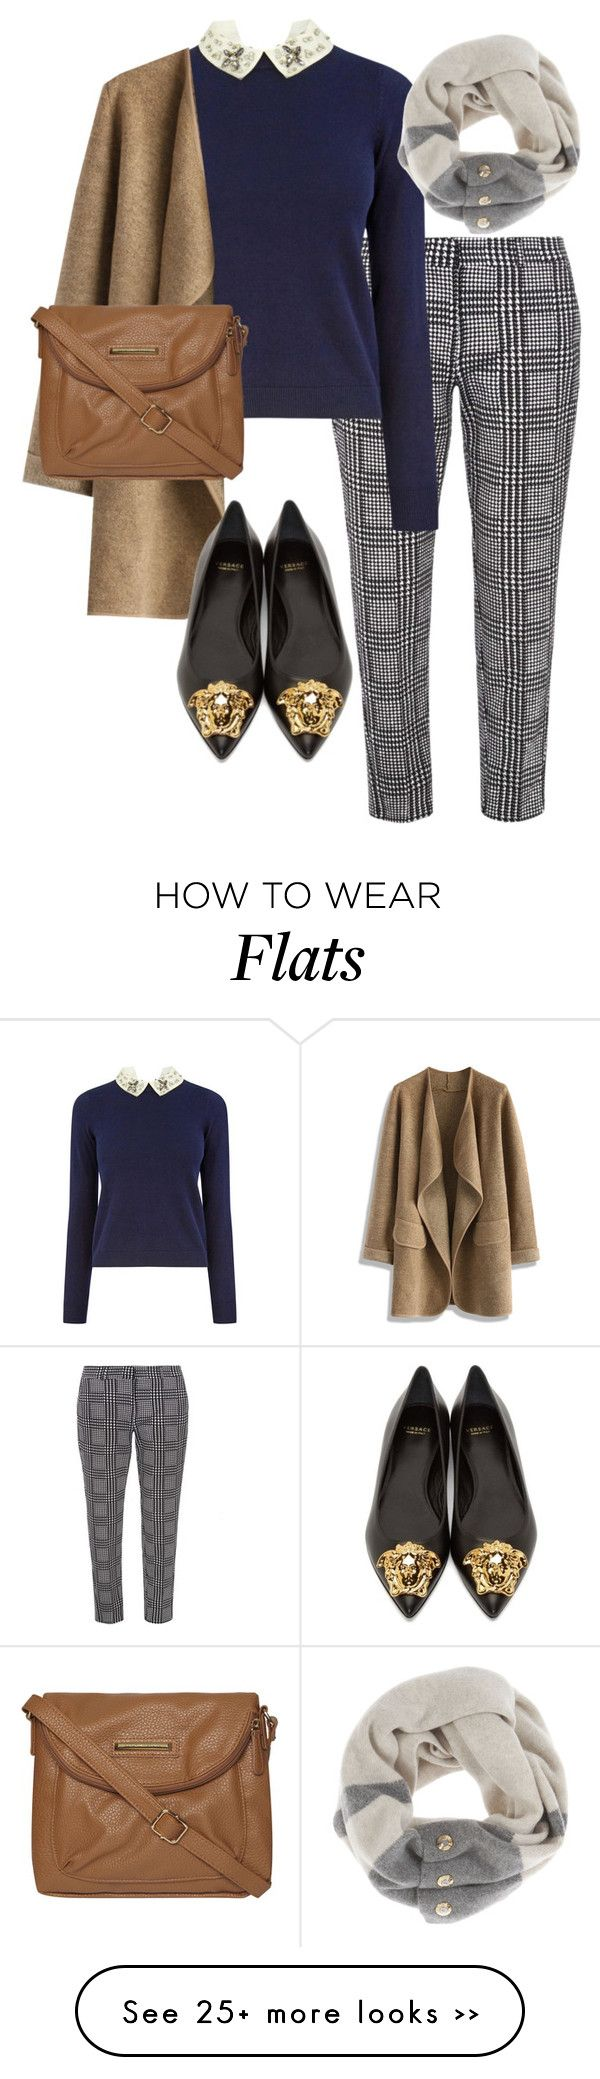 """Untitled #123"" by littlehamstr on Polyvore featuring Dorothy Perkins, Oasis, Chicwish, Versace and Henri Bendel"